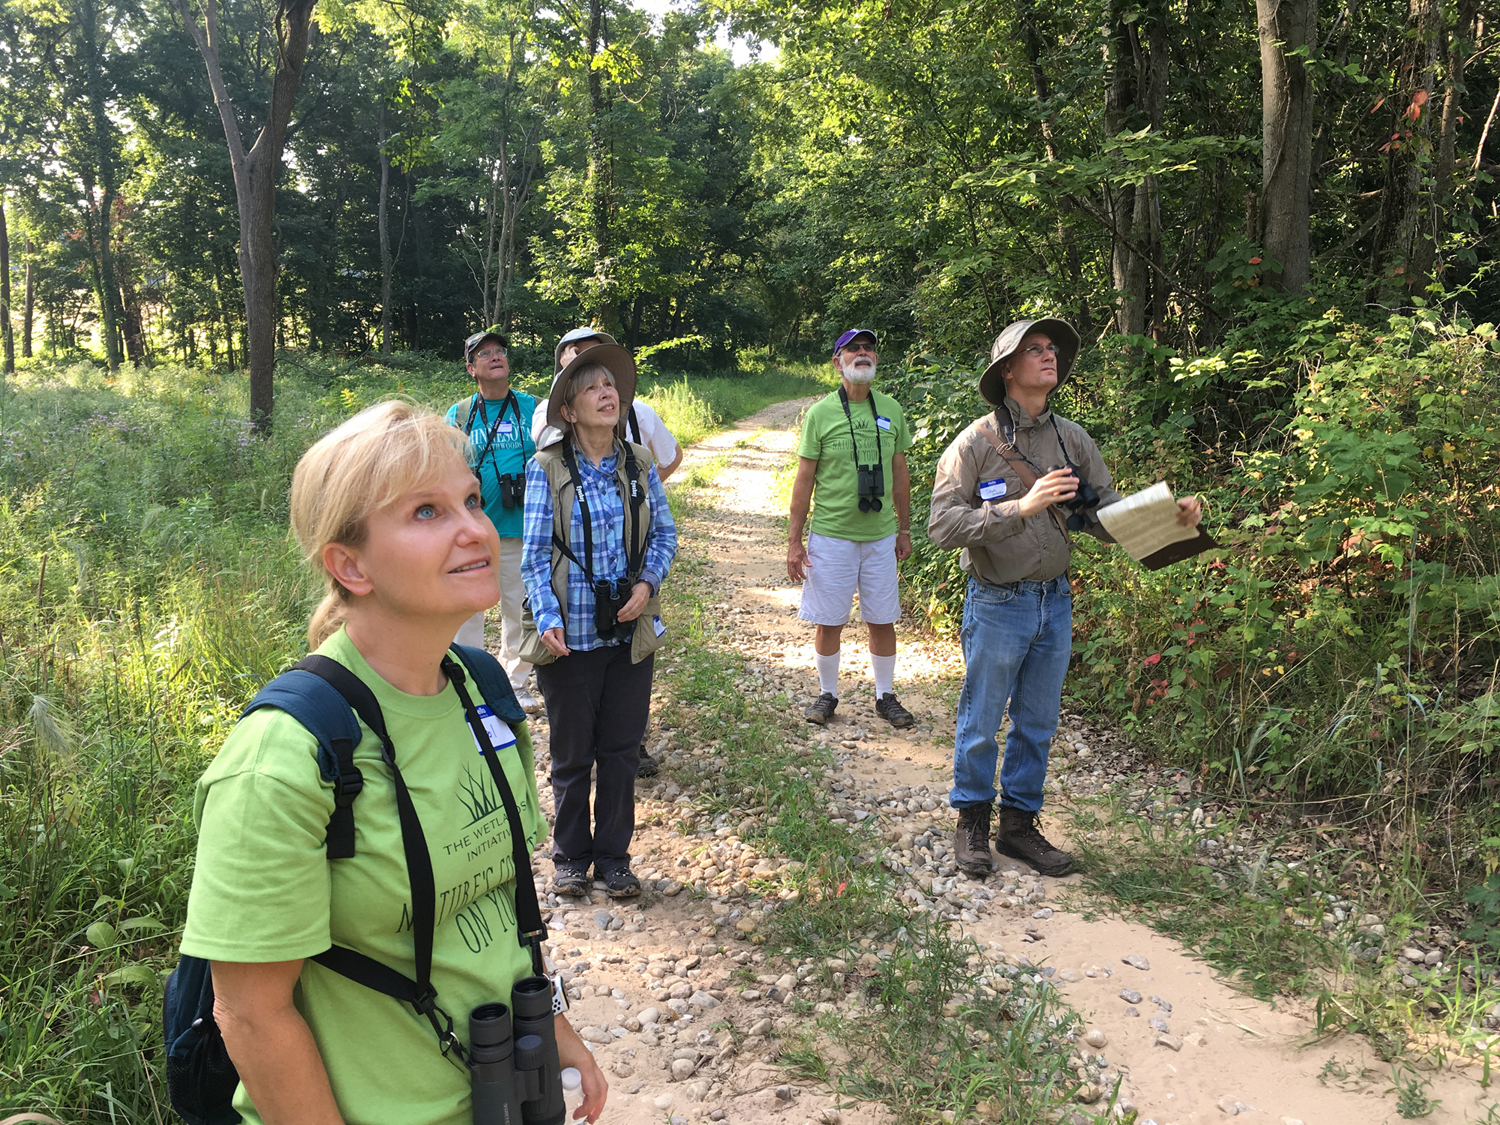 A survey group that hiked the trail system at the new Sandy Hollow tract of the Refuge found 50 bird species, including Sedge Wrens, Red-headed Woodpeckers, and Yellow-billed Cuckoos. Photo by Vera Leopold/TWI.